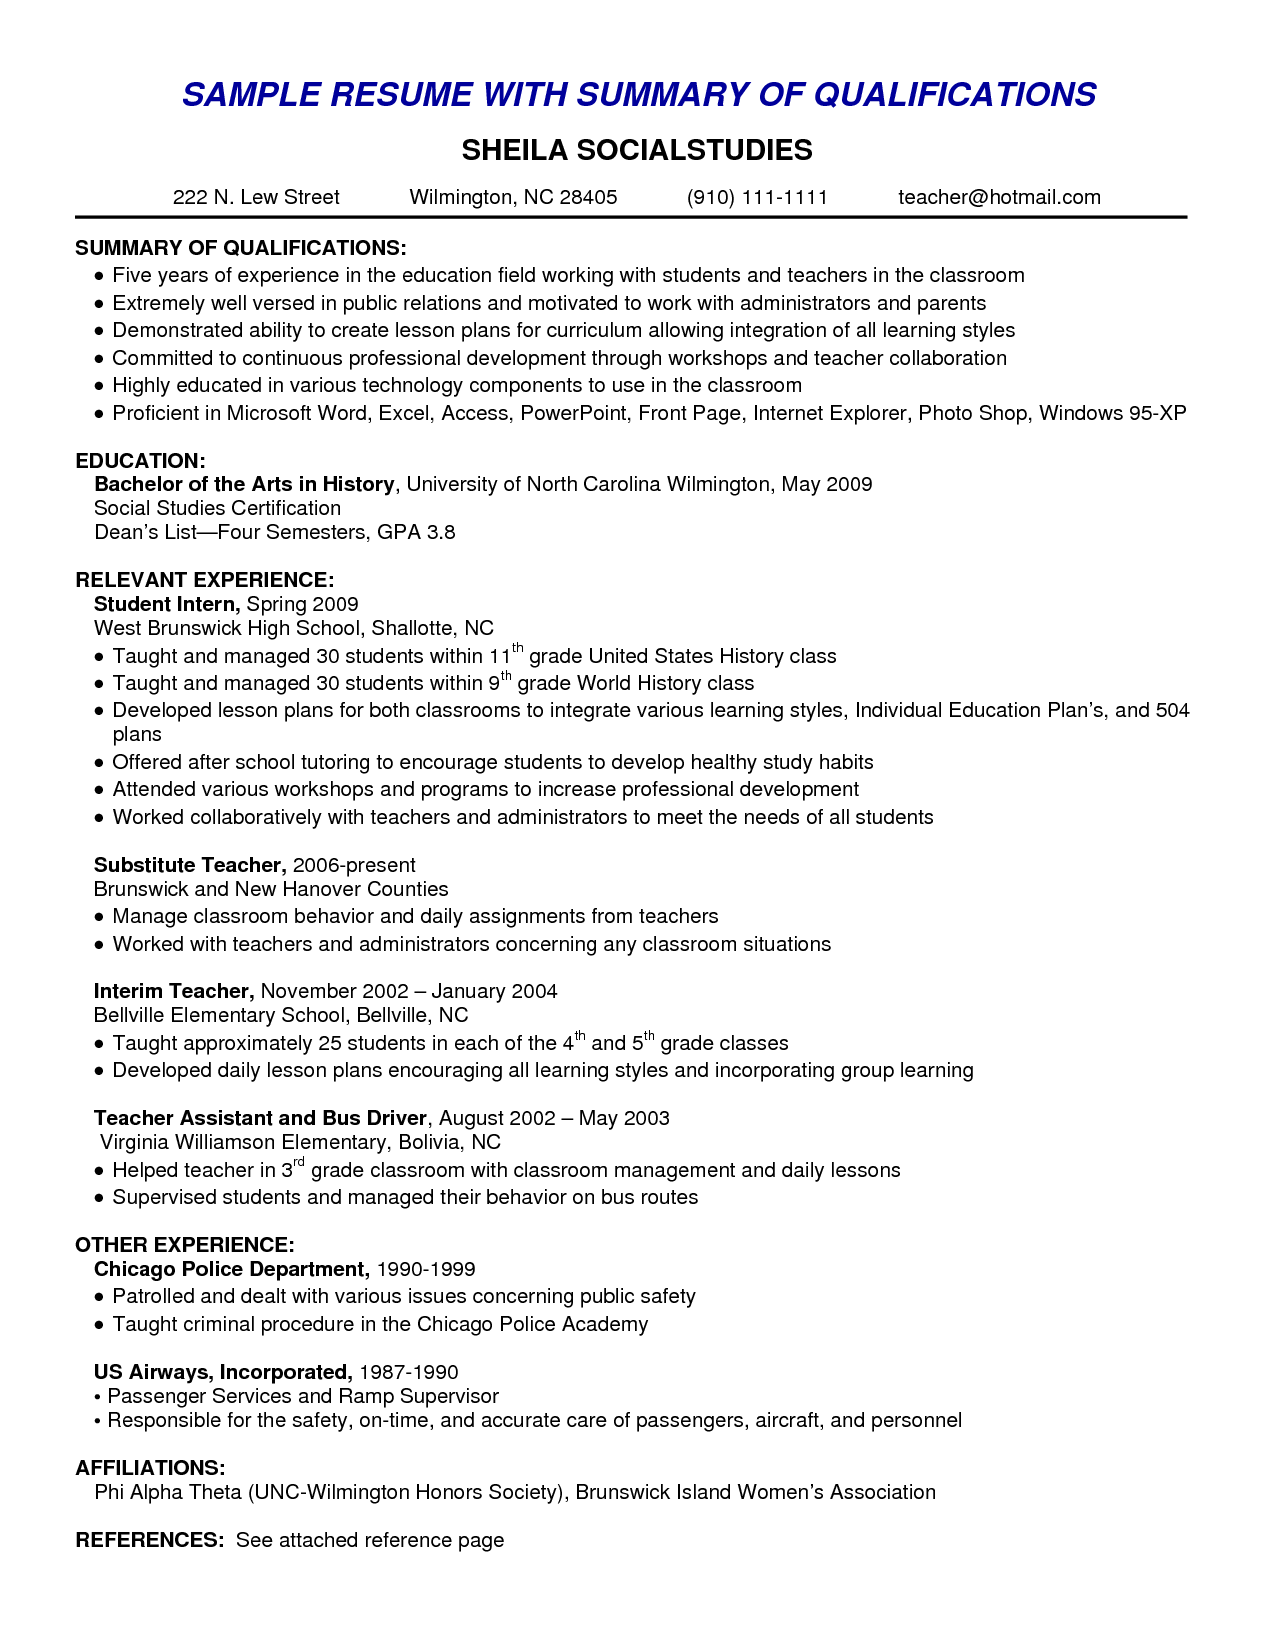 Examples Of Qualifications On A Resume Kubreforic